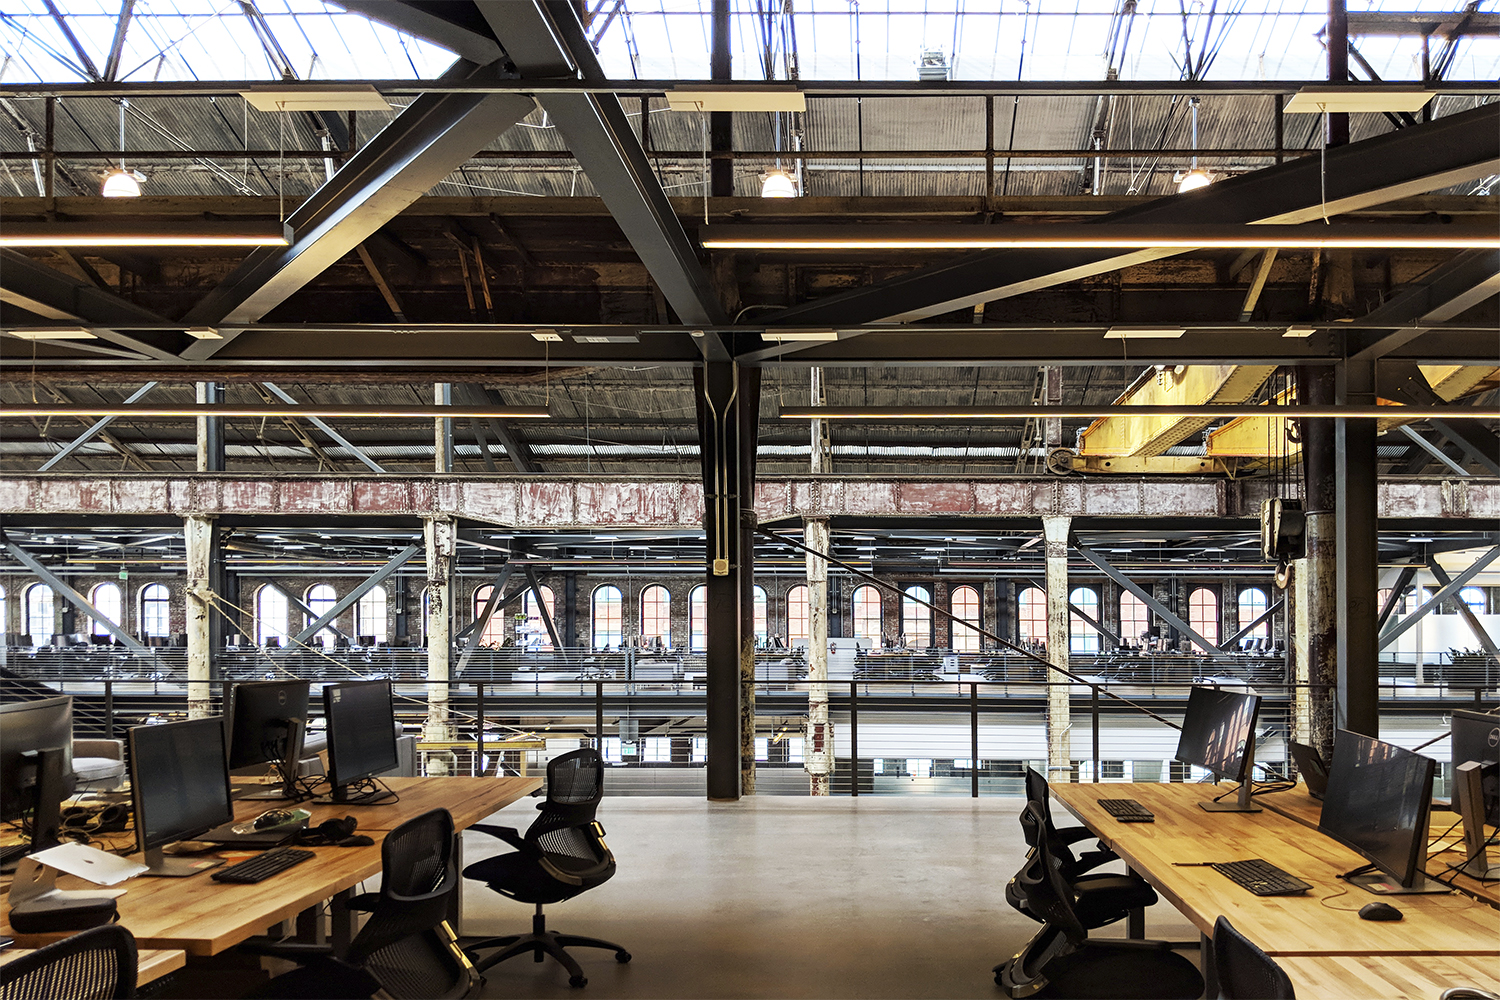 12_Projects_Adaptive Reuse of Historic Pier 70.jpg